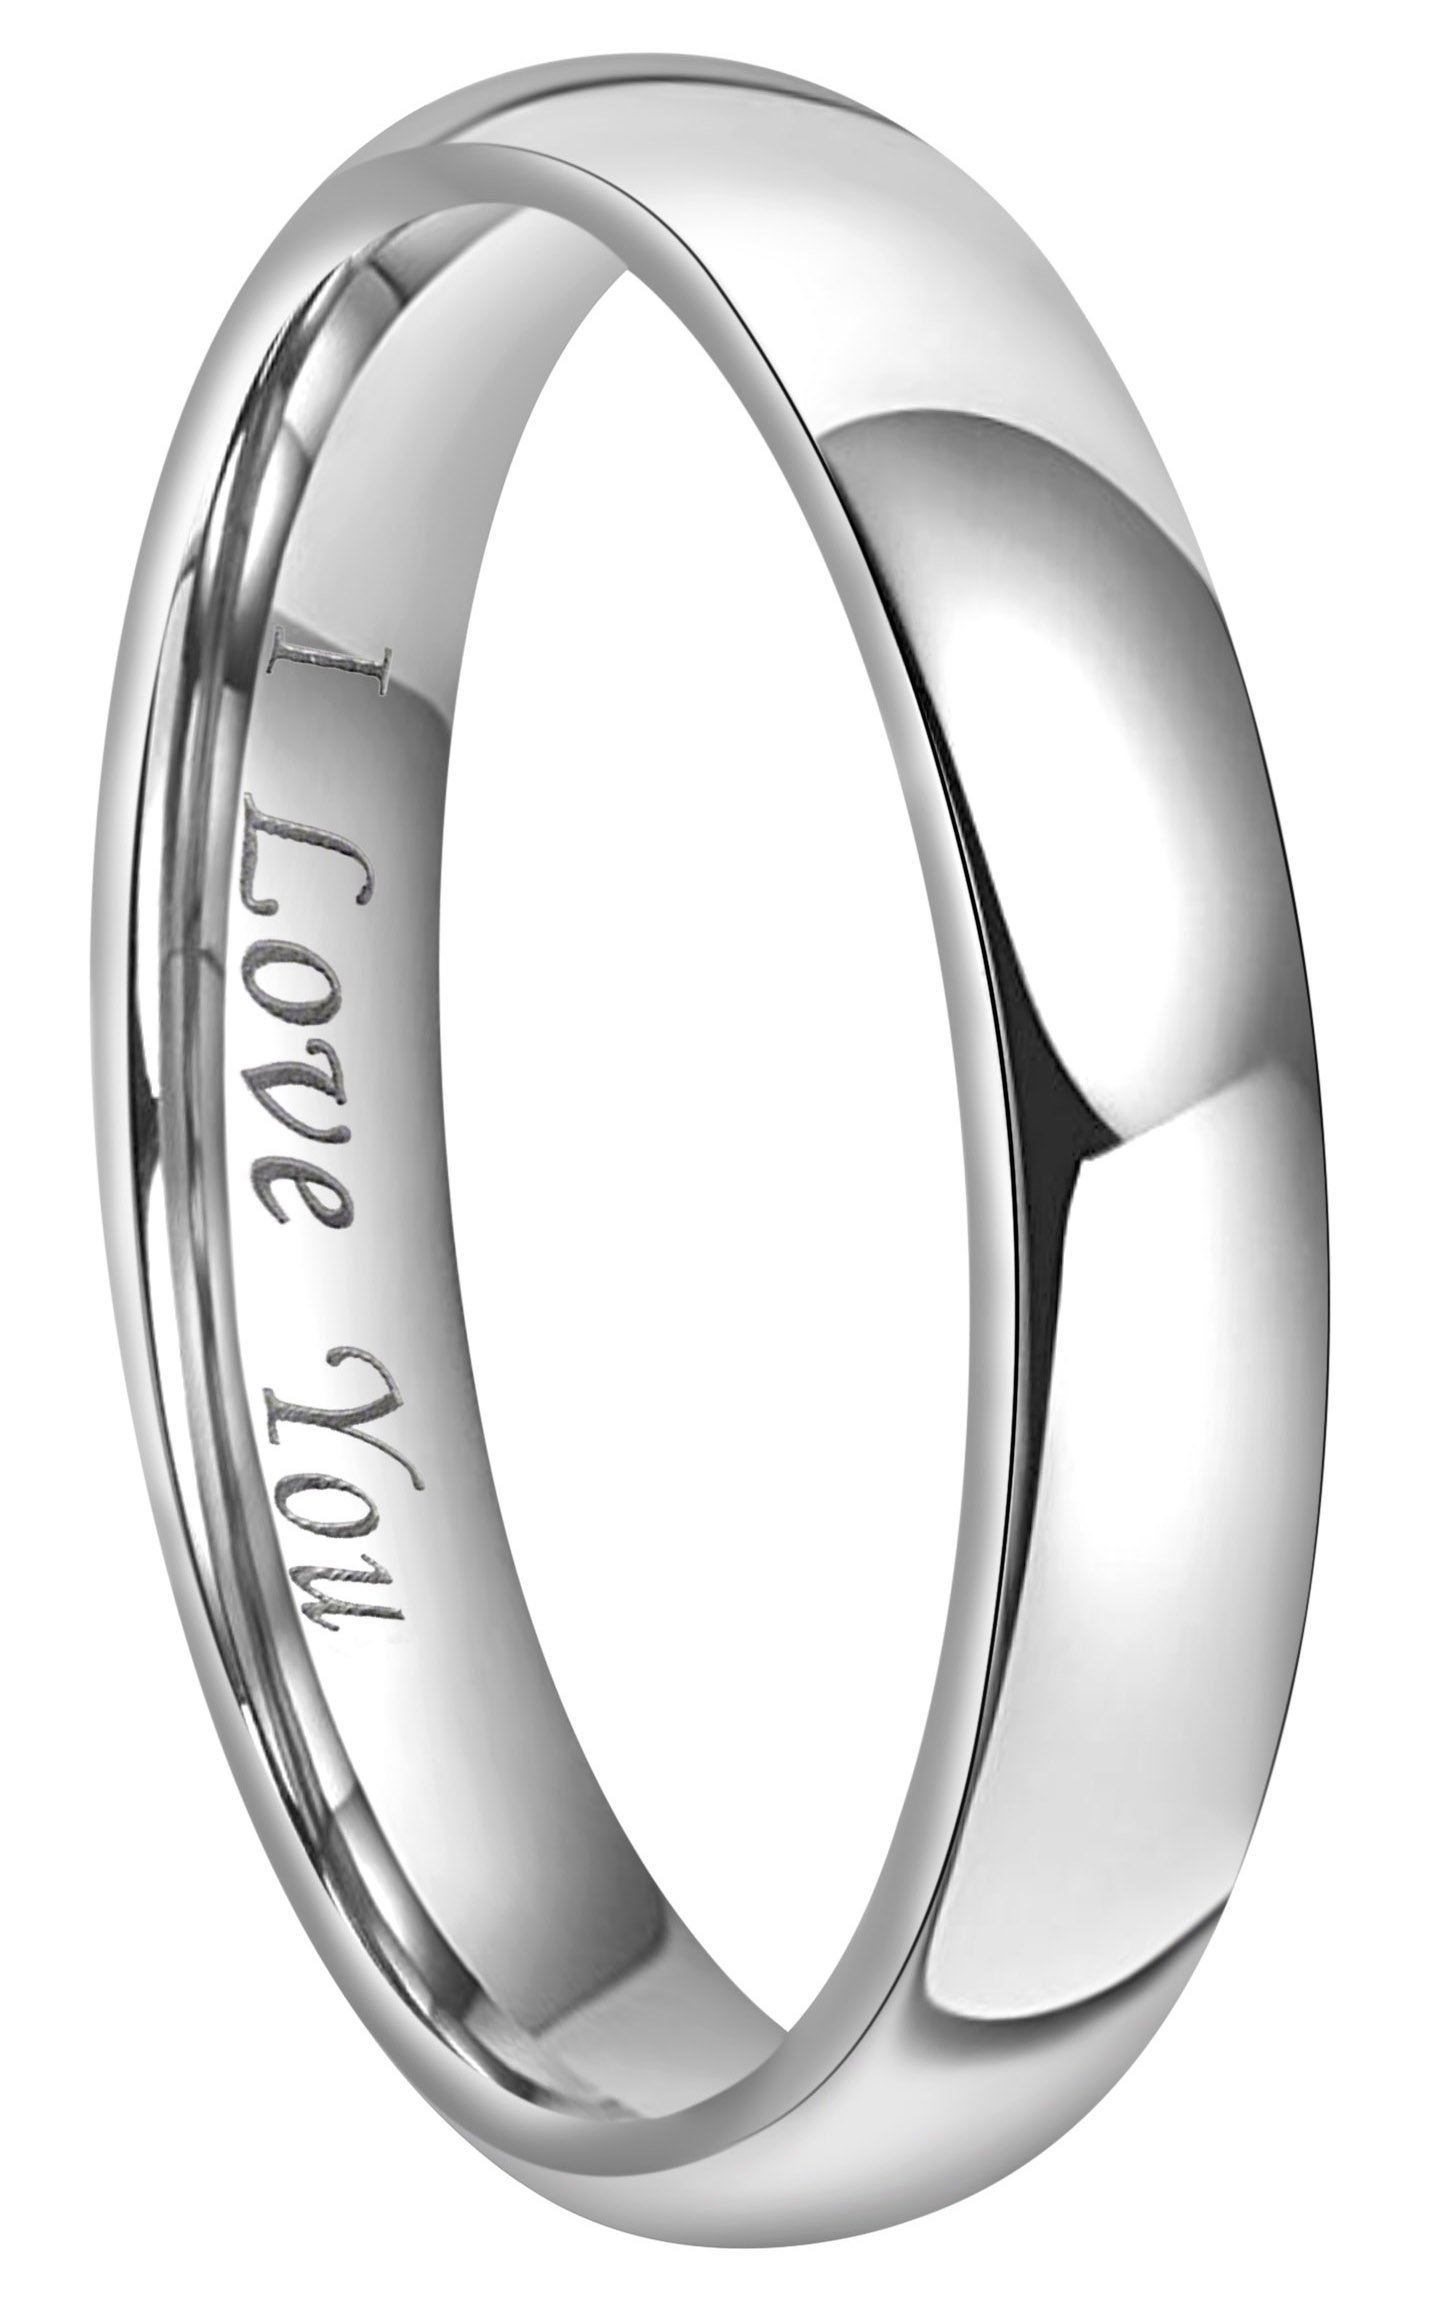 CROWNAL 4mm 6mm 8mm Tungsten Wedding Band Ring Couple Men Women Plain Dome Polished Engraved I Love You Comfort Fit Size 3 To 17 (4mm,11)